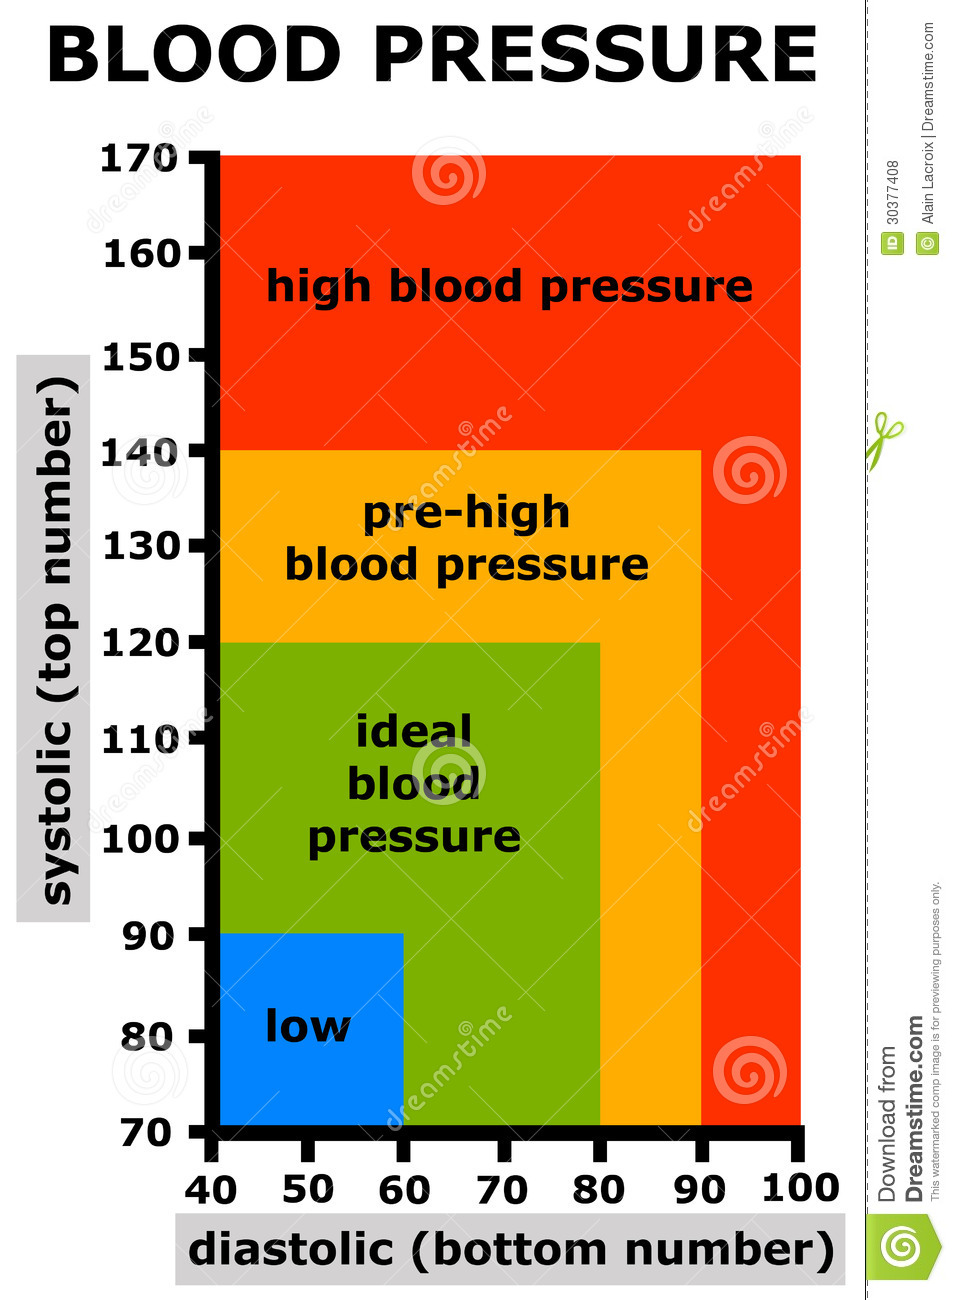 Blood pressure chart clipart clipground blood pressure chart clipart nvjuhfo Image collections